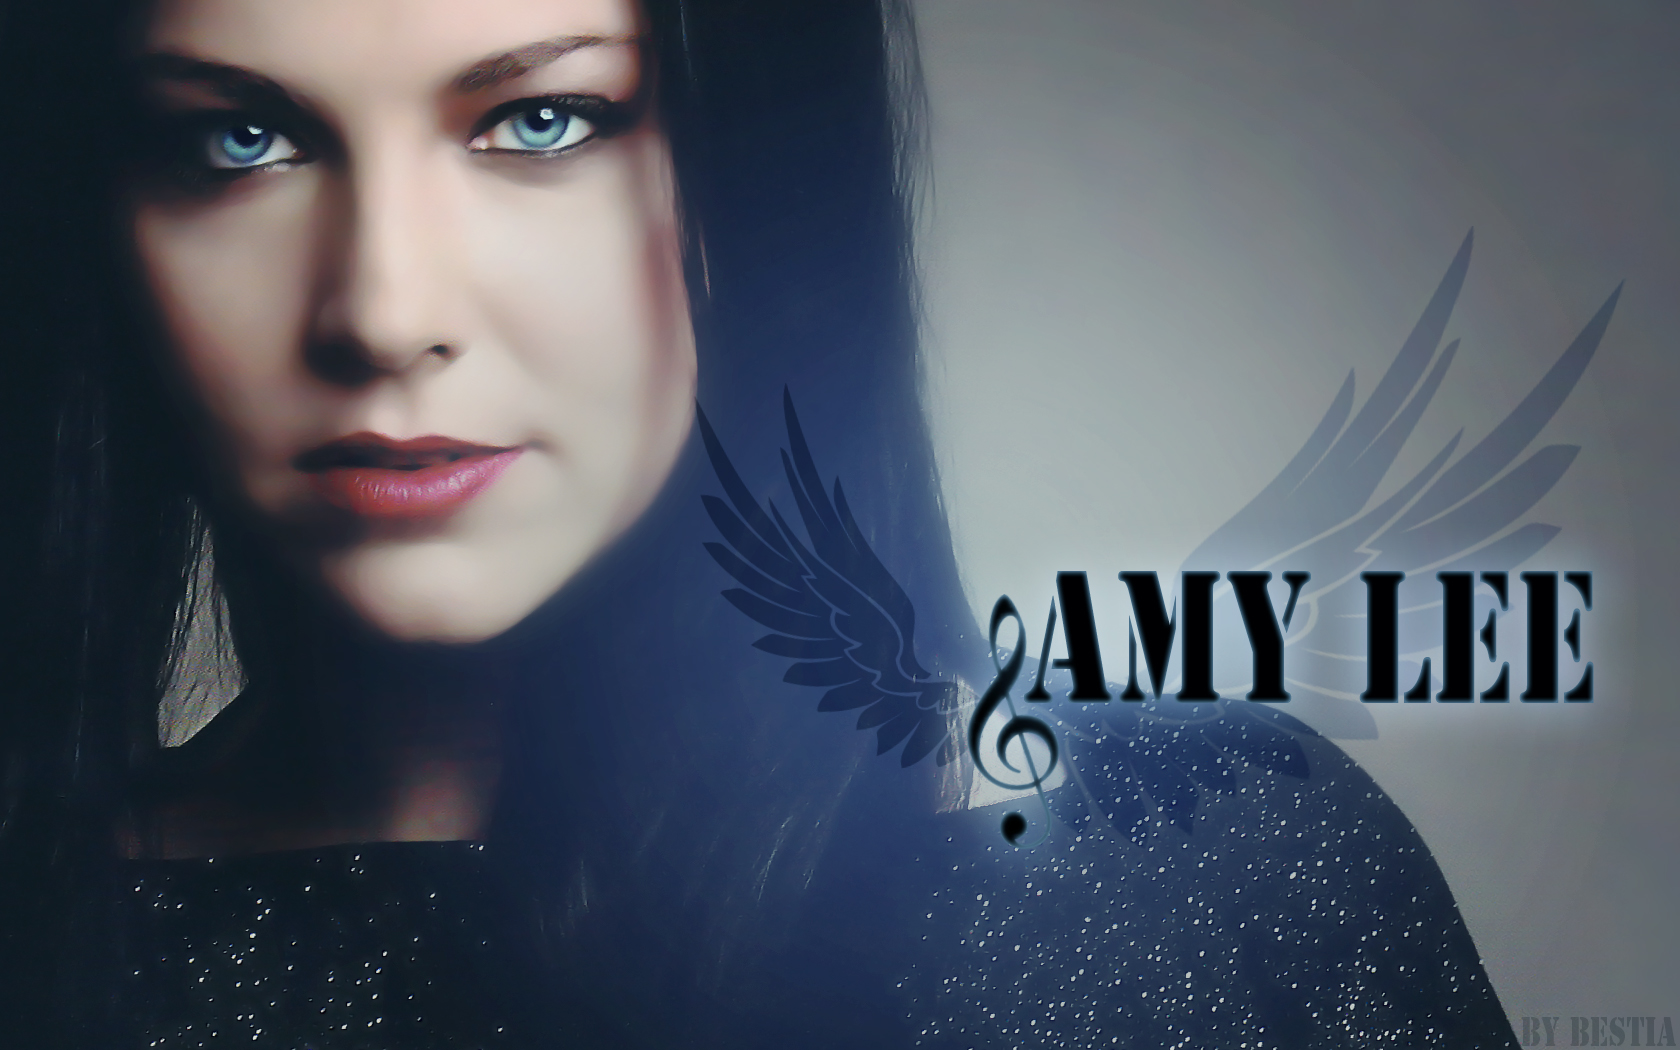 Evanescence Wallpaper and Background 1680x1050 ID446769 1680x1050